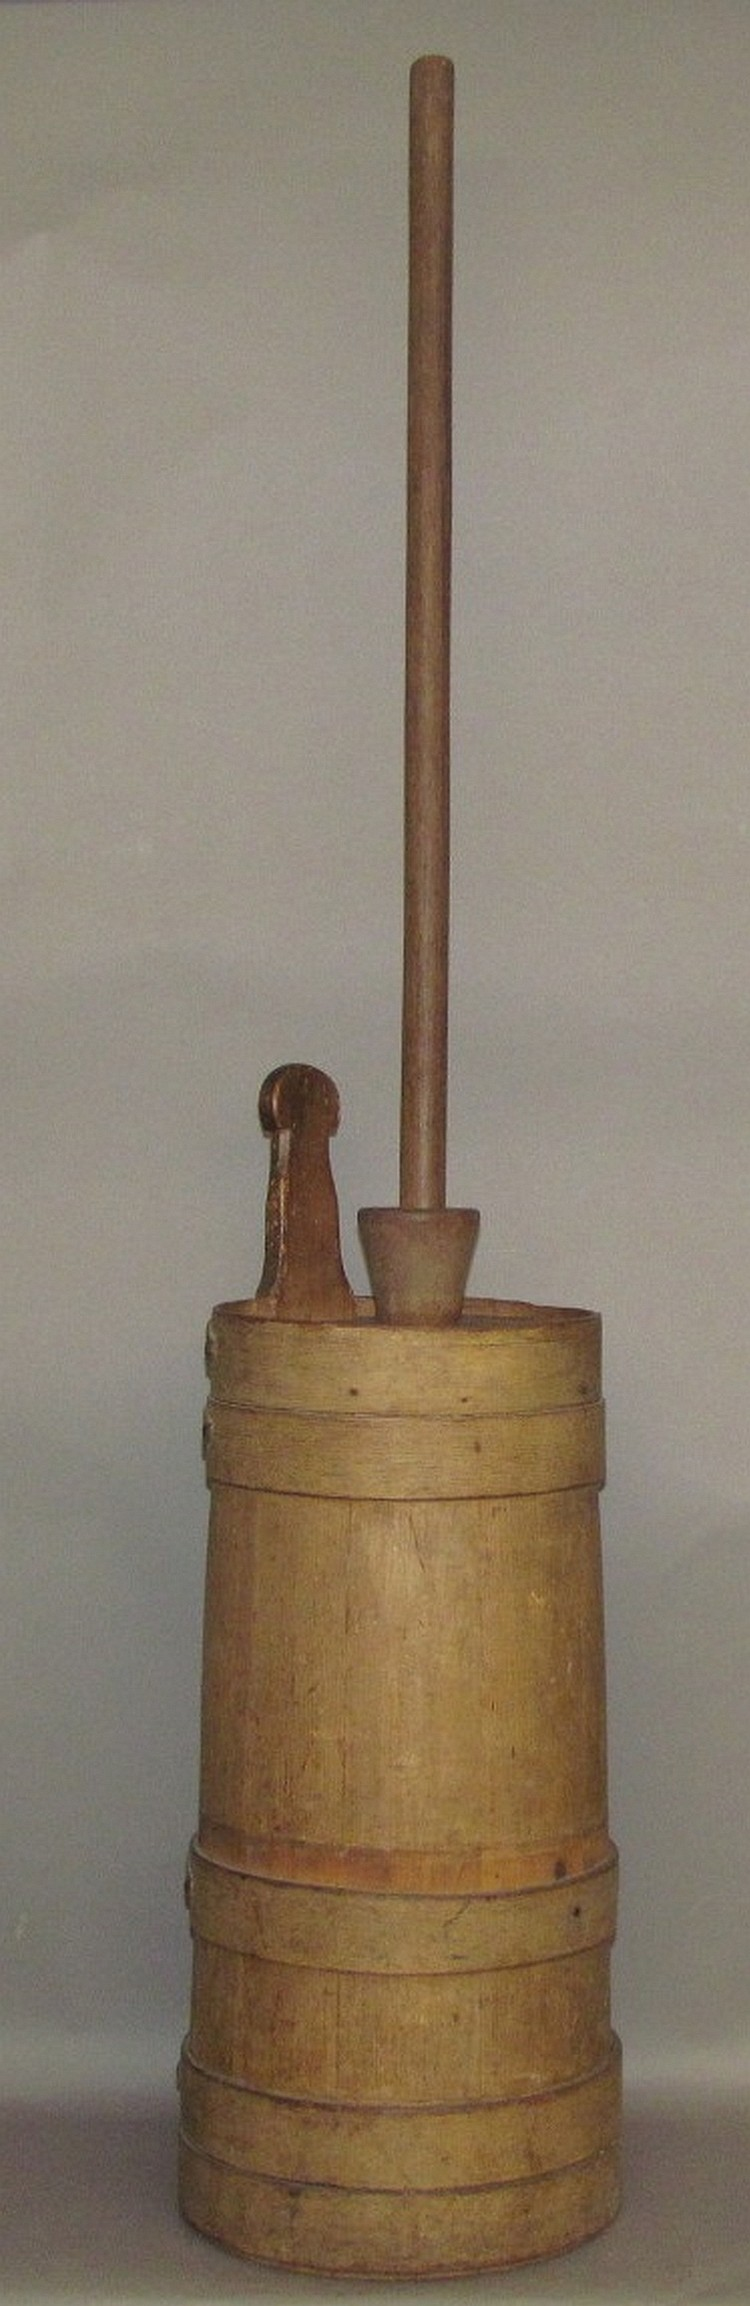 P. Hersey signed butter churn